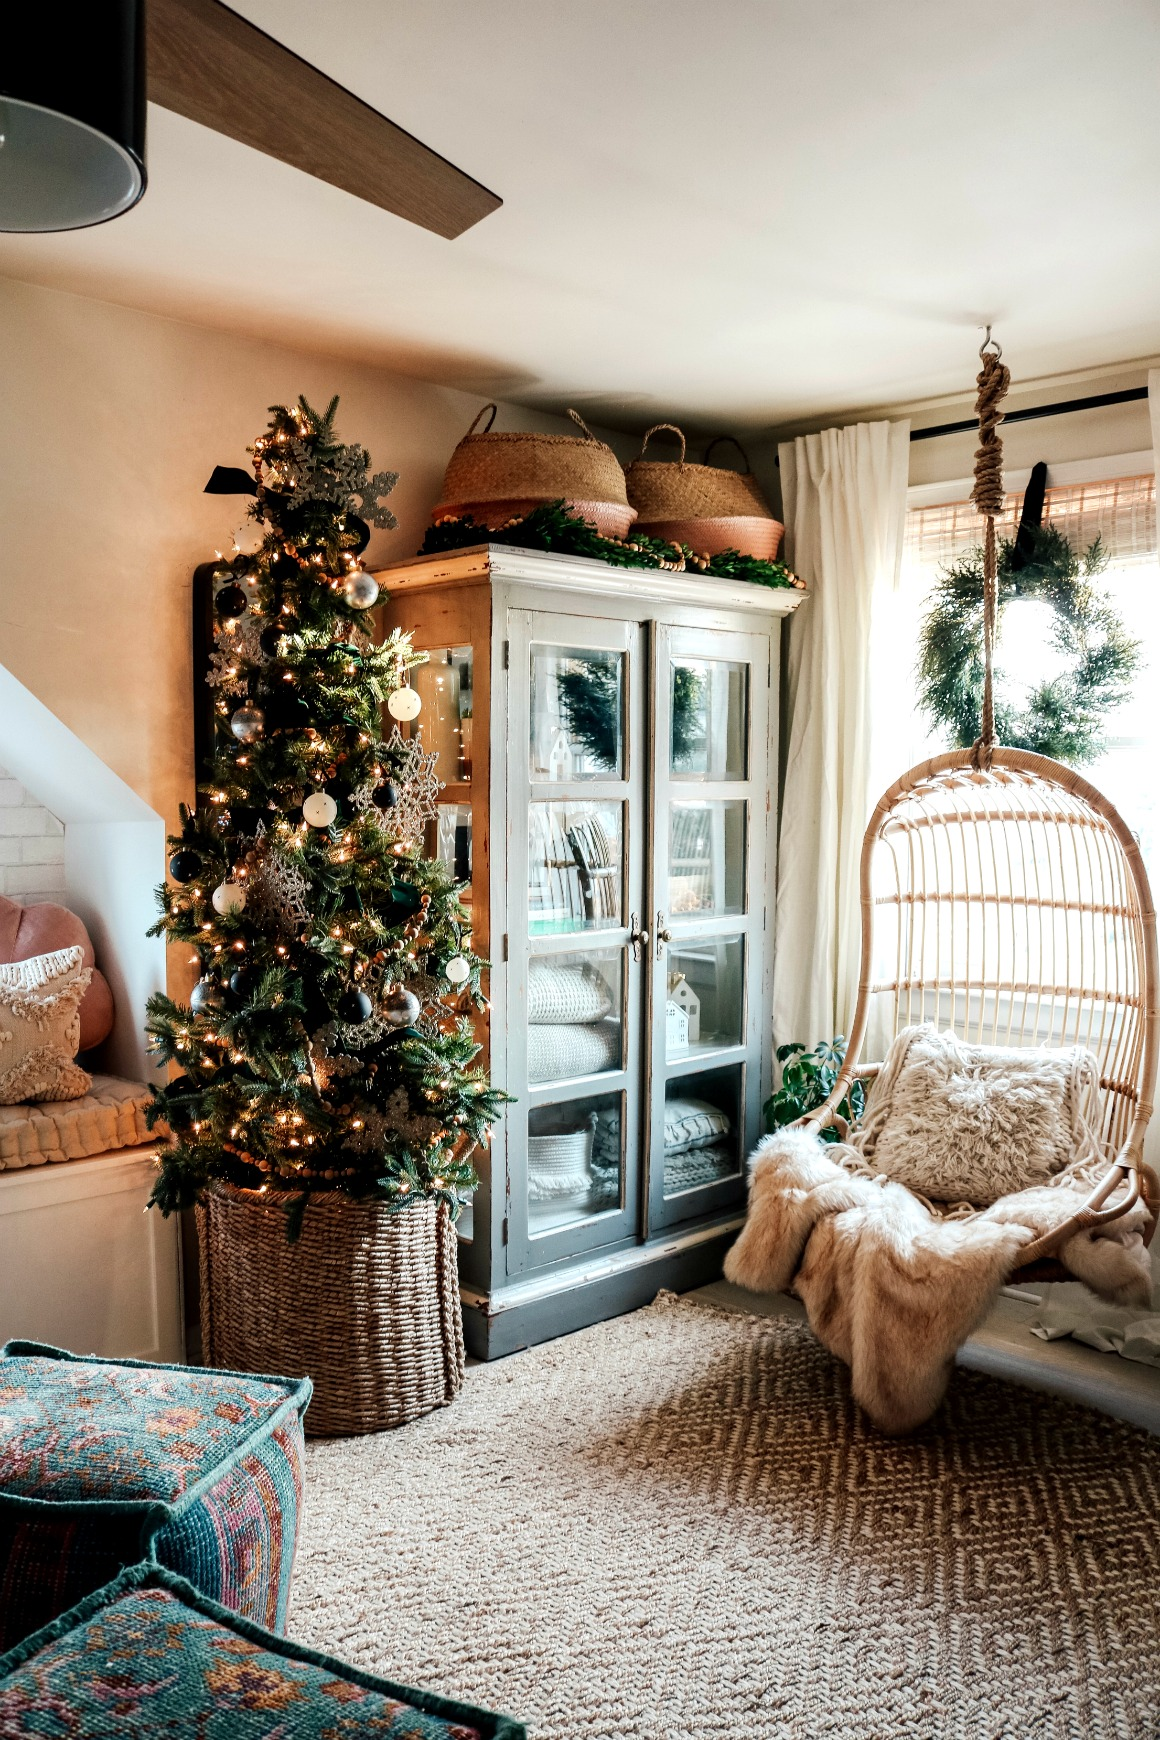 Peachy Wayfair Cyber Monday Deals And Christmas In Our Family Room Pabps2019 Chair Design Images Pabps2019Com